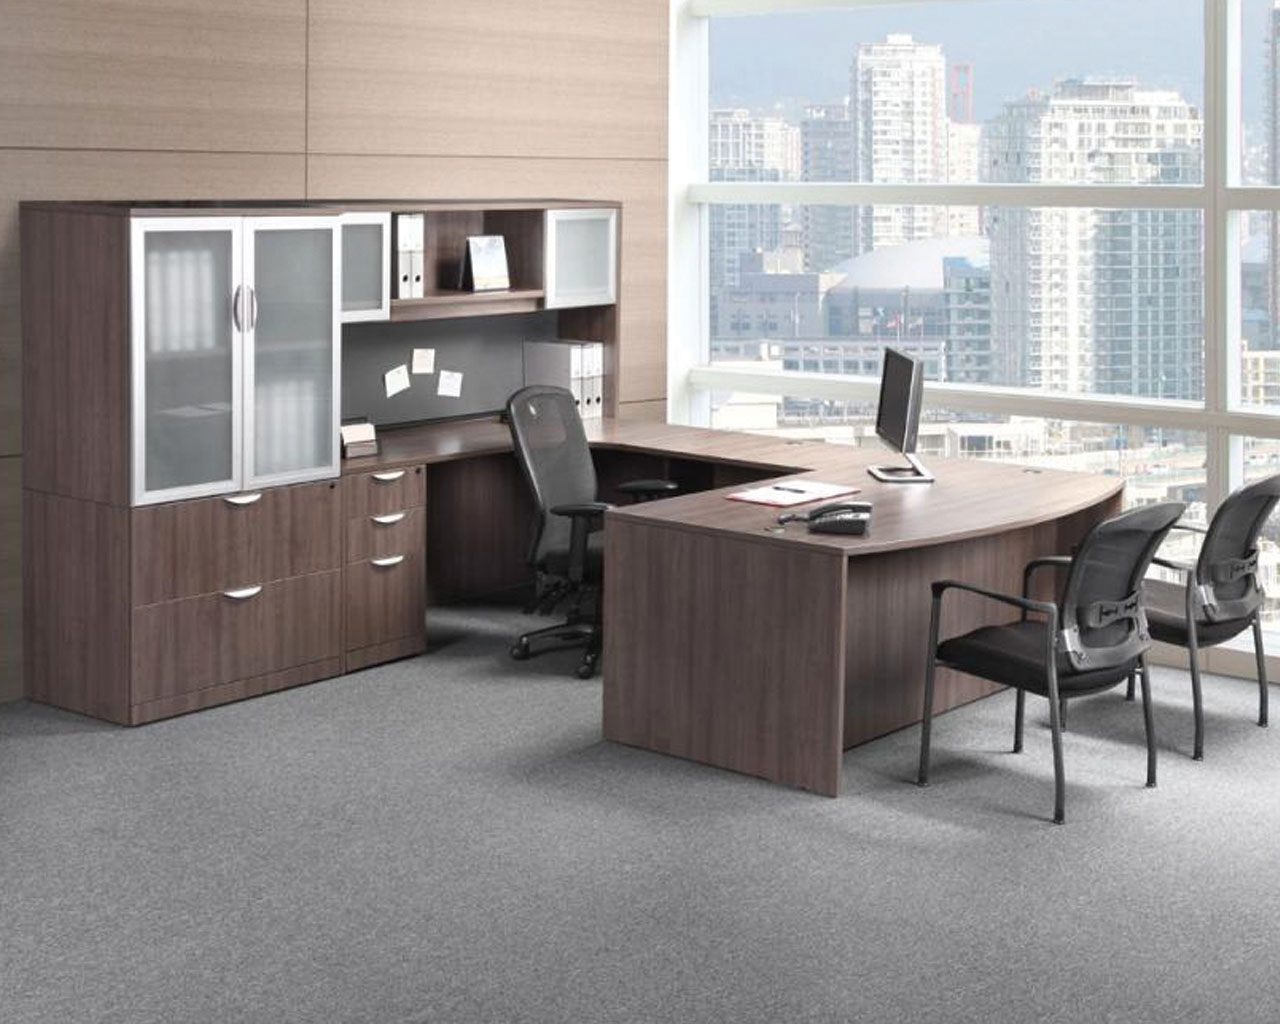 Classic Executive Bowfront Desk with a Box/Box/File Pedestal